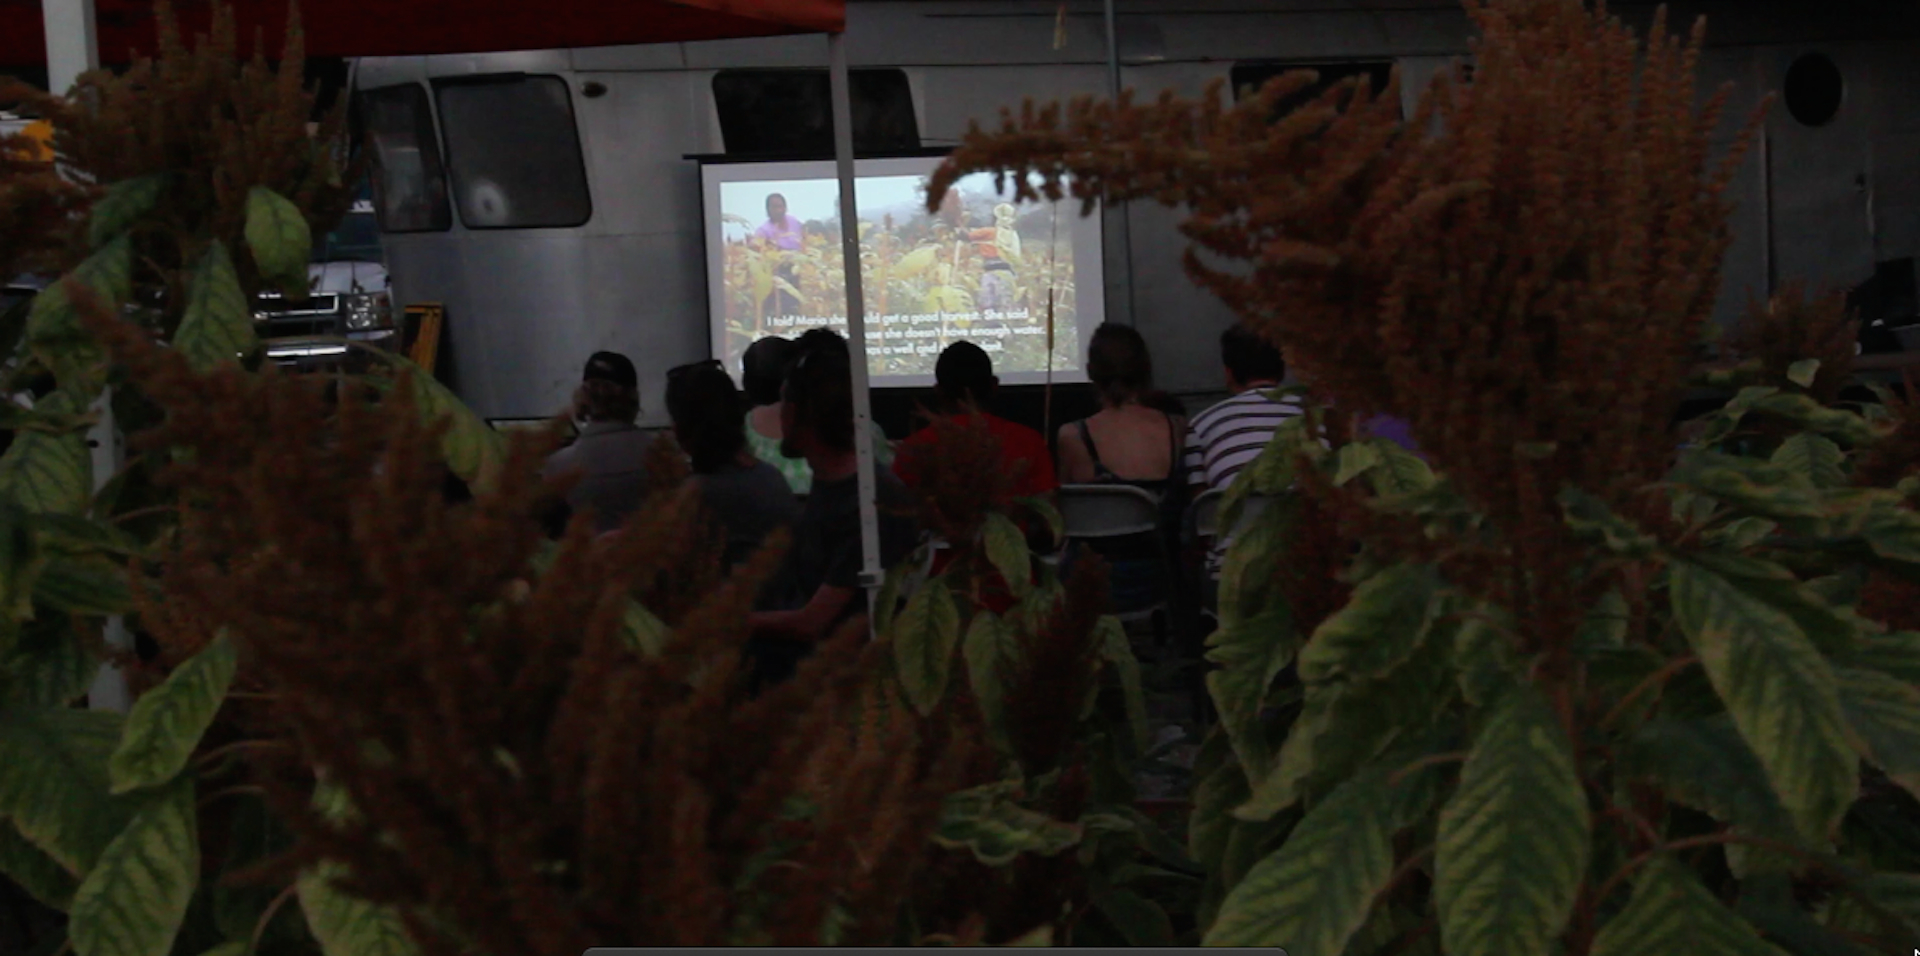 Film screening at Side Street Projects, 2014